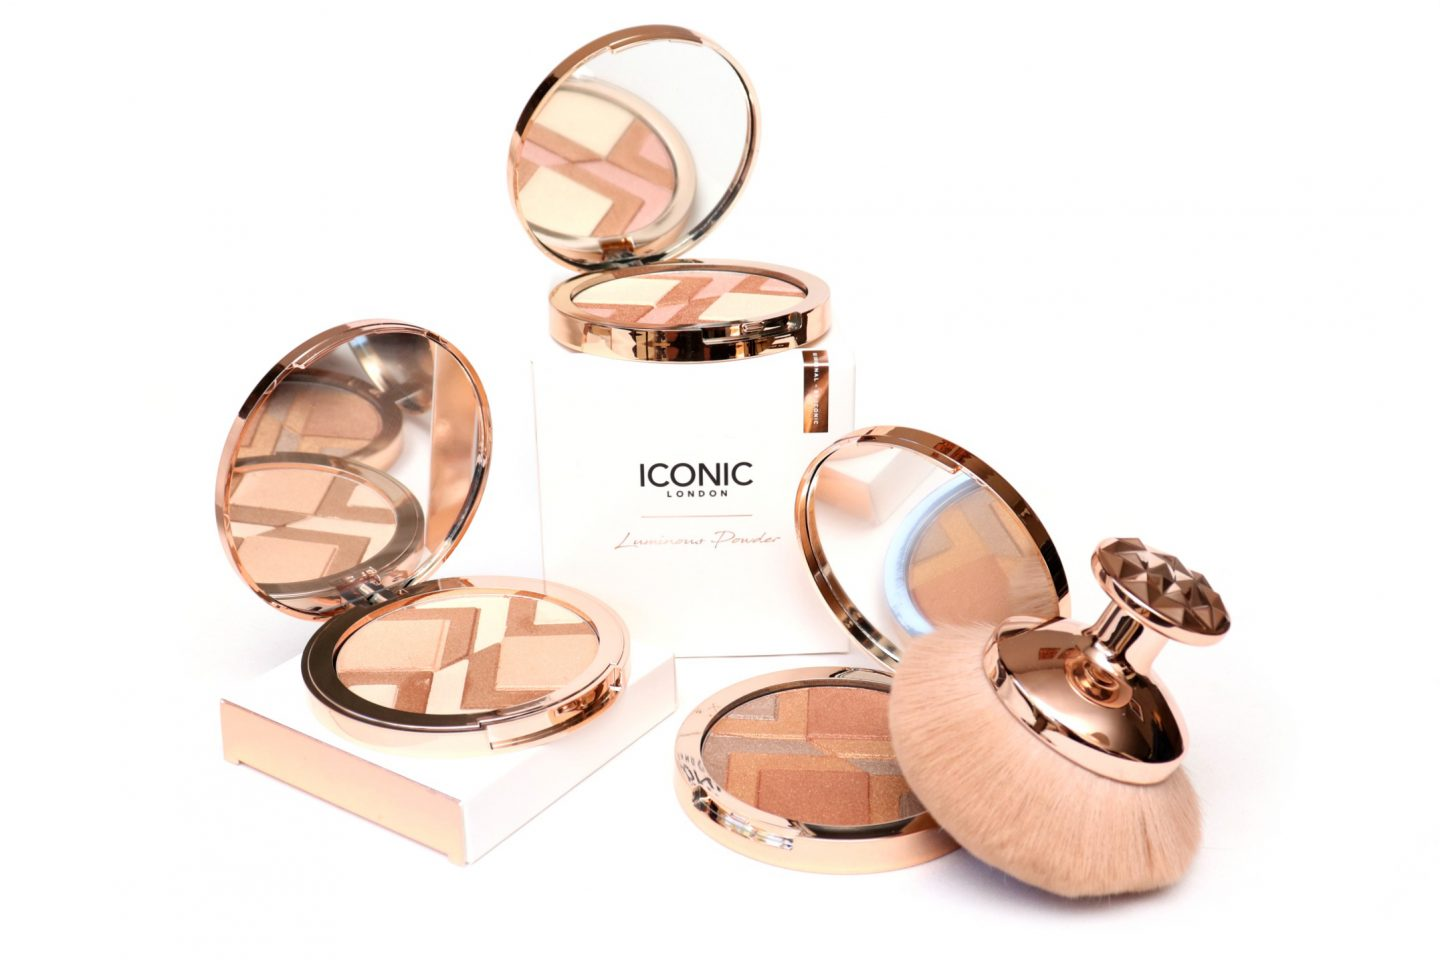 ICONIC London Luminous Powder Collection Review